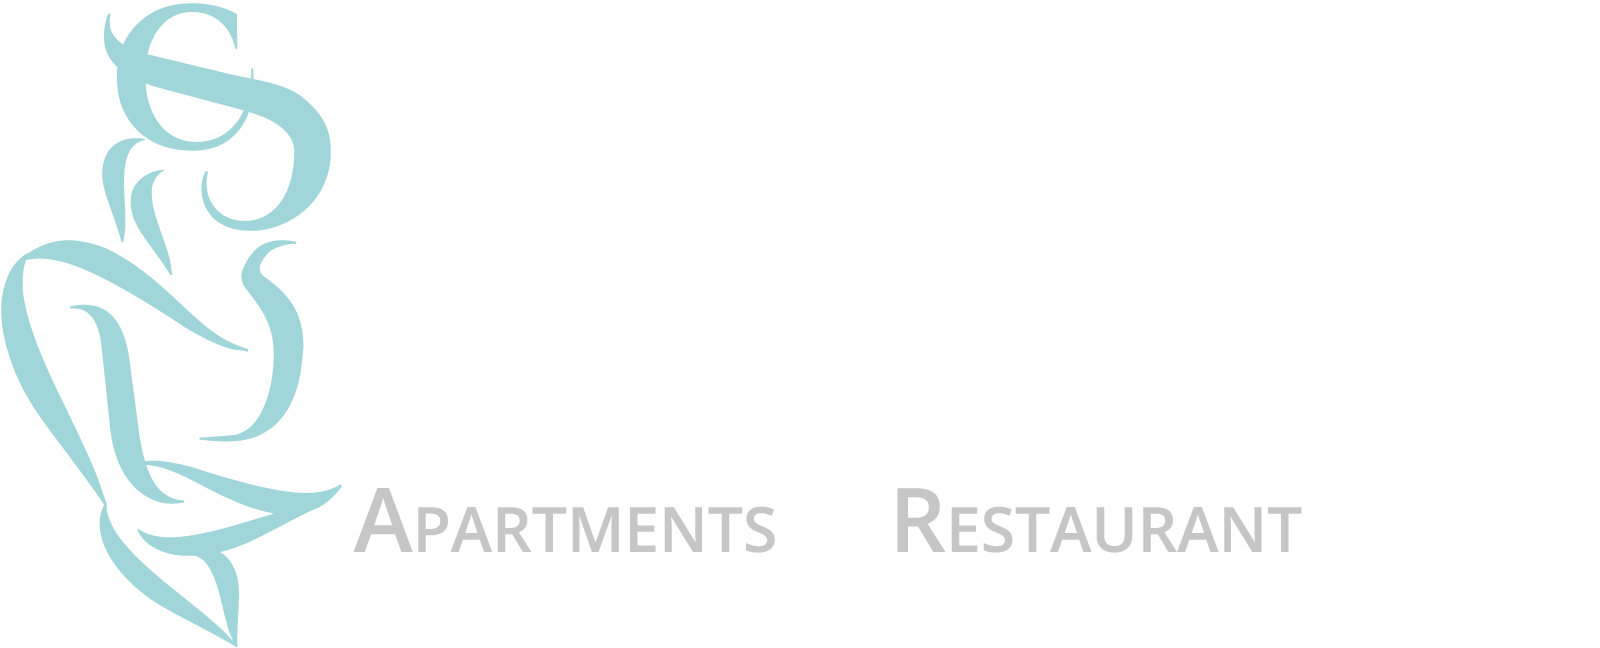 Meerestochter – Apartments, Café & Restaurant in Kappeln Logo